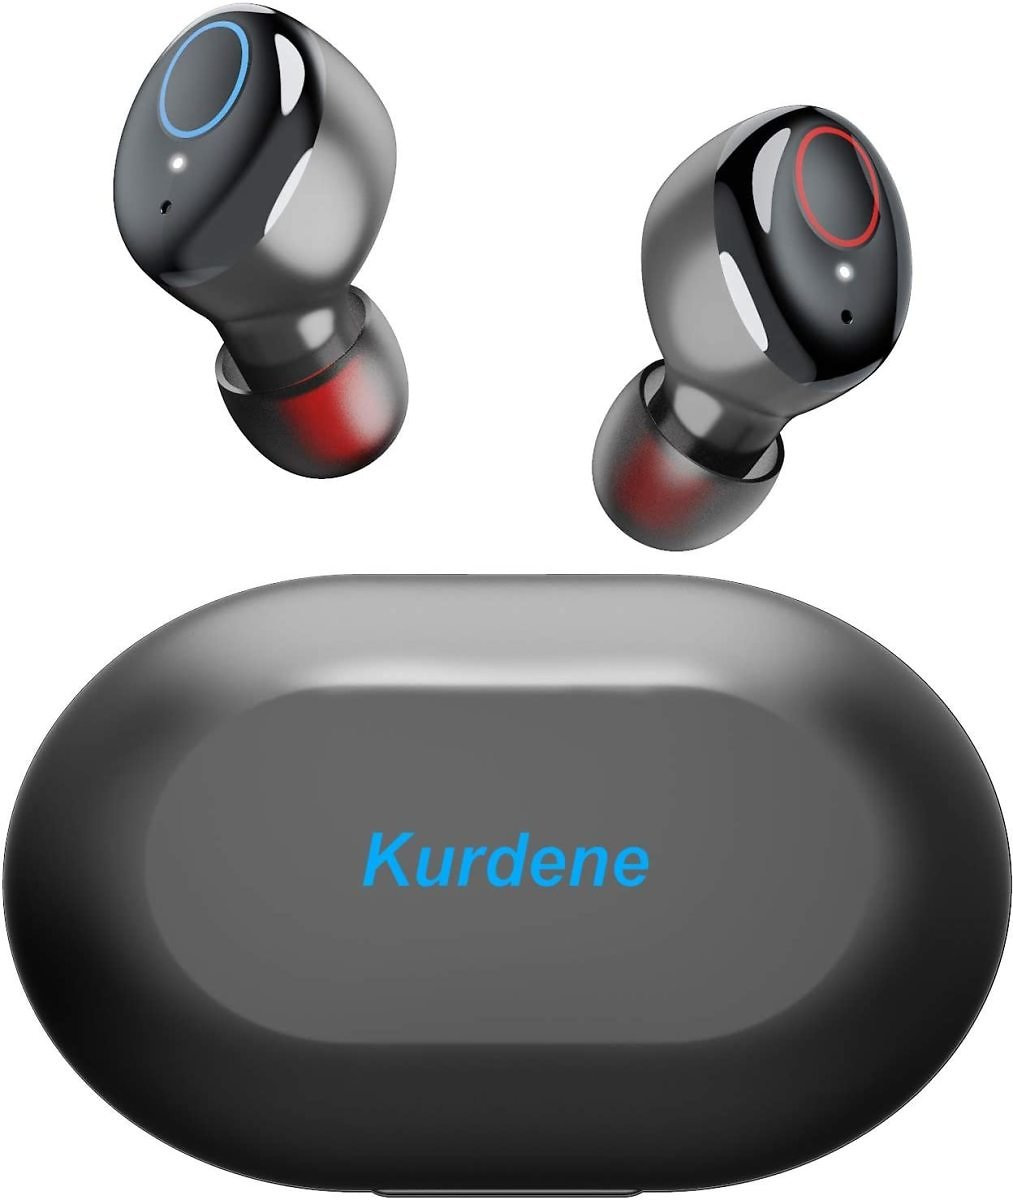 Kurdene Bluetooth Wireless Earbuds,Bluetooth Wireless Headphones with Charging Case Immersive Sounds IPX8 Waterproof Touch Contr